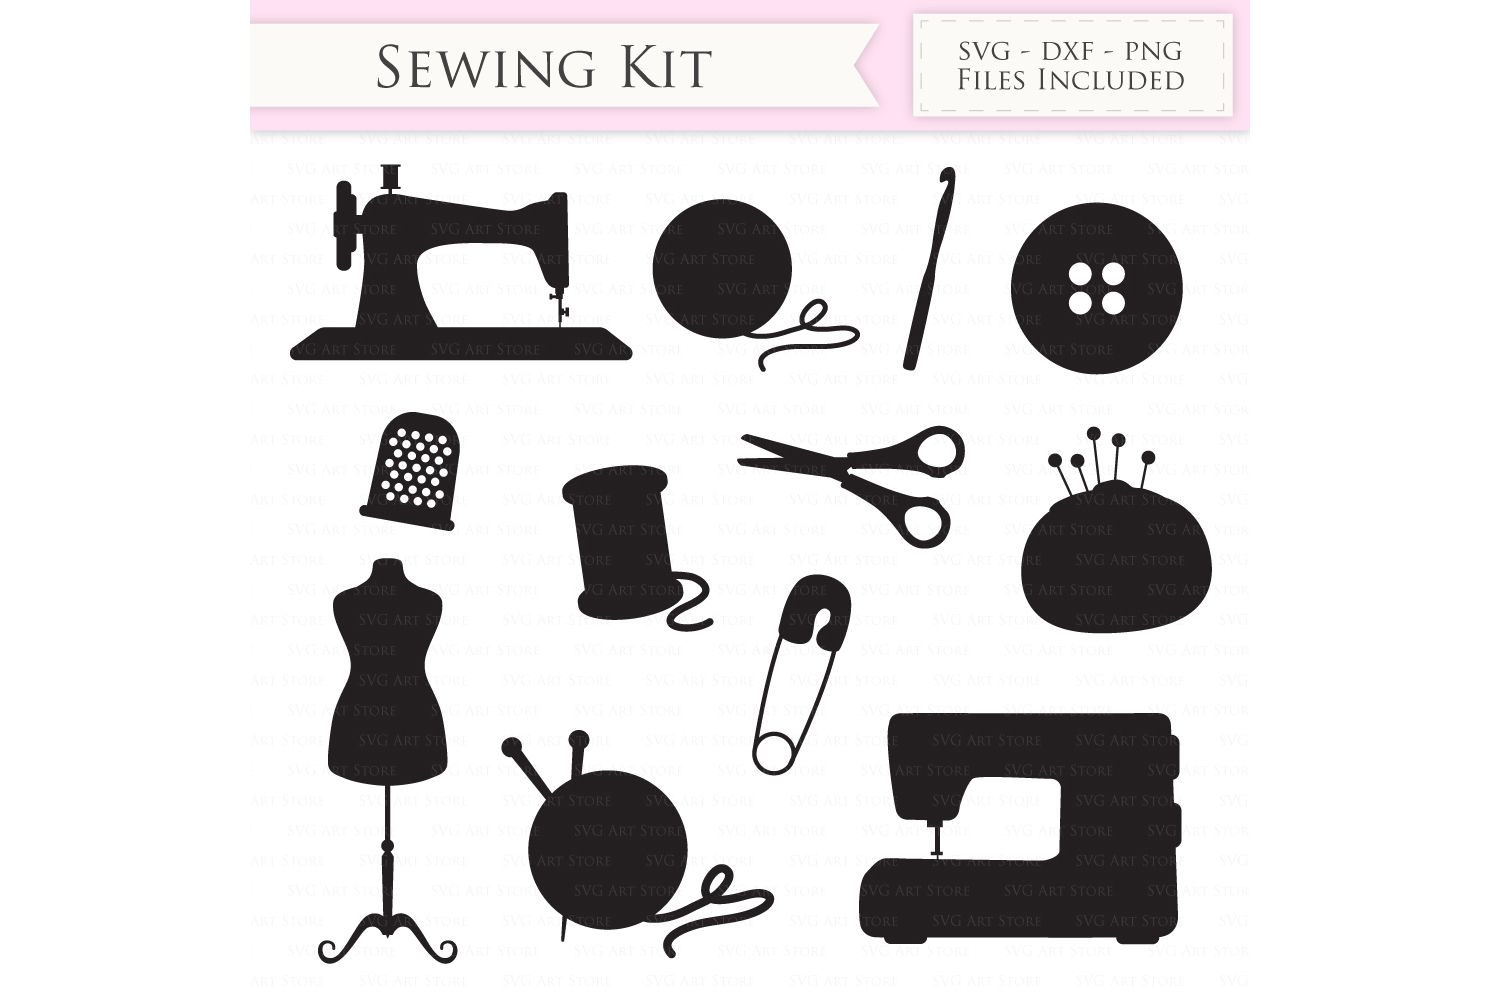 Sewing Machine SVG Knitting svg cutting files Cricut and Silhouette SVG dxf png jpg included. Crochet cutting files stitching svg example image 1